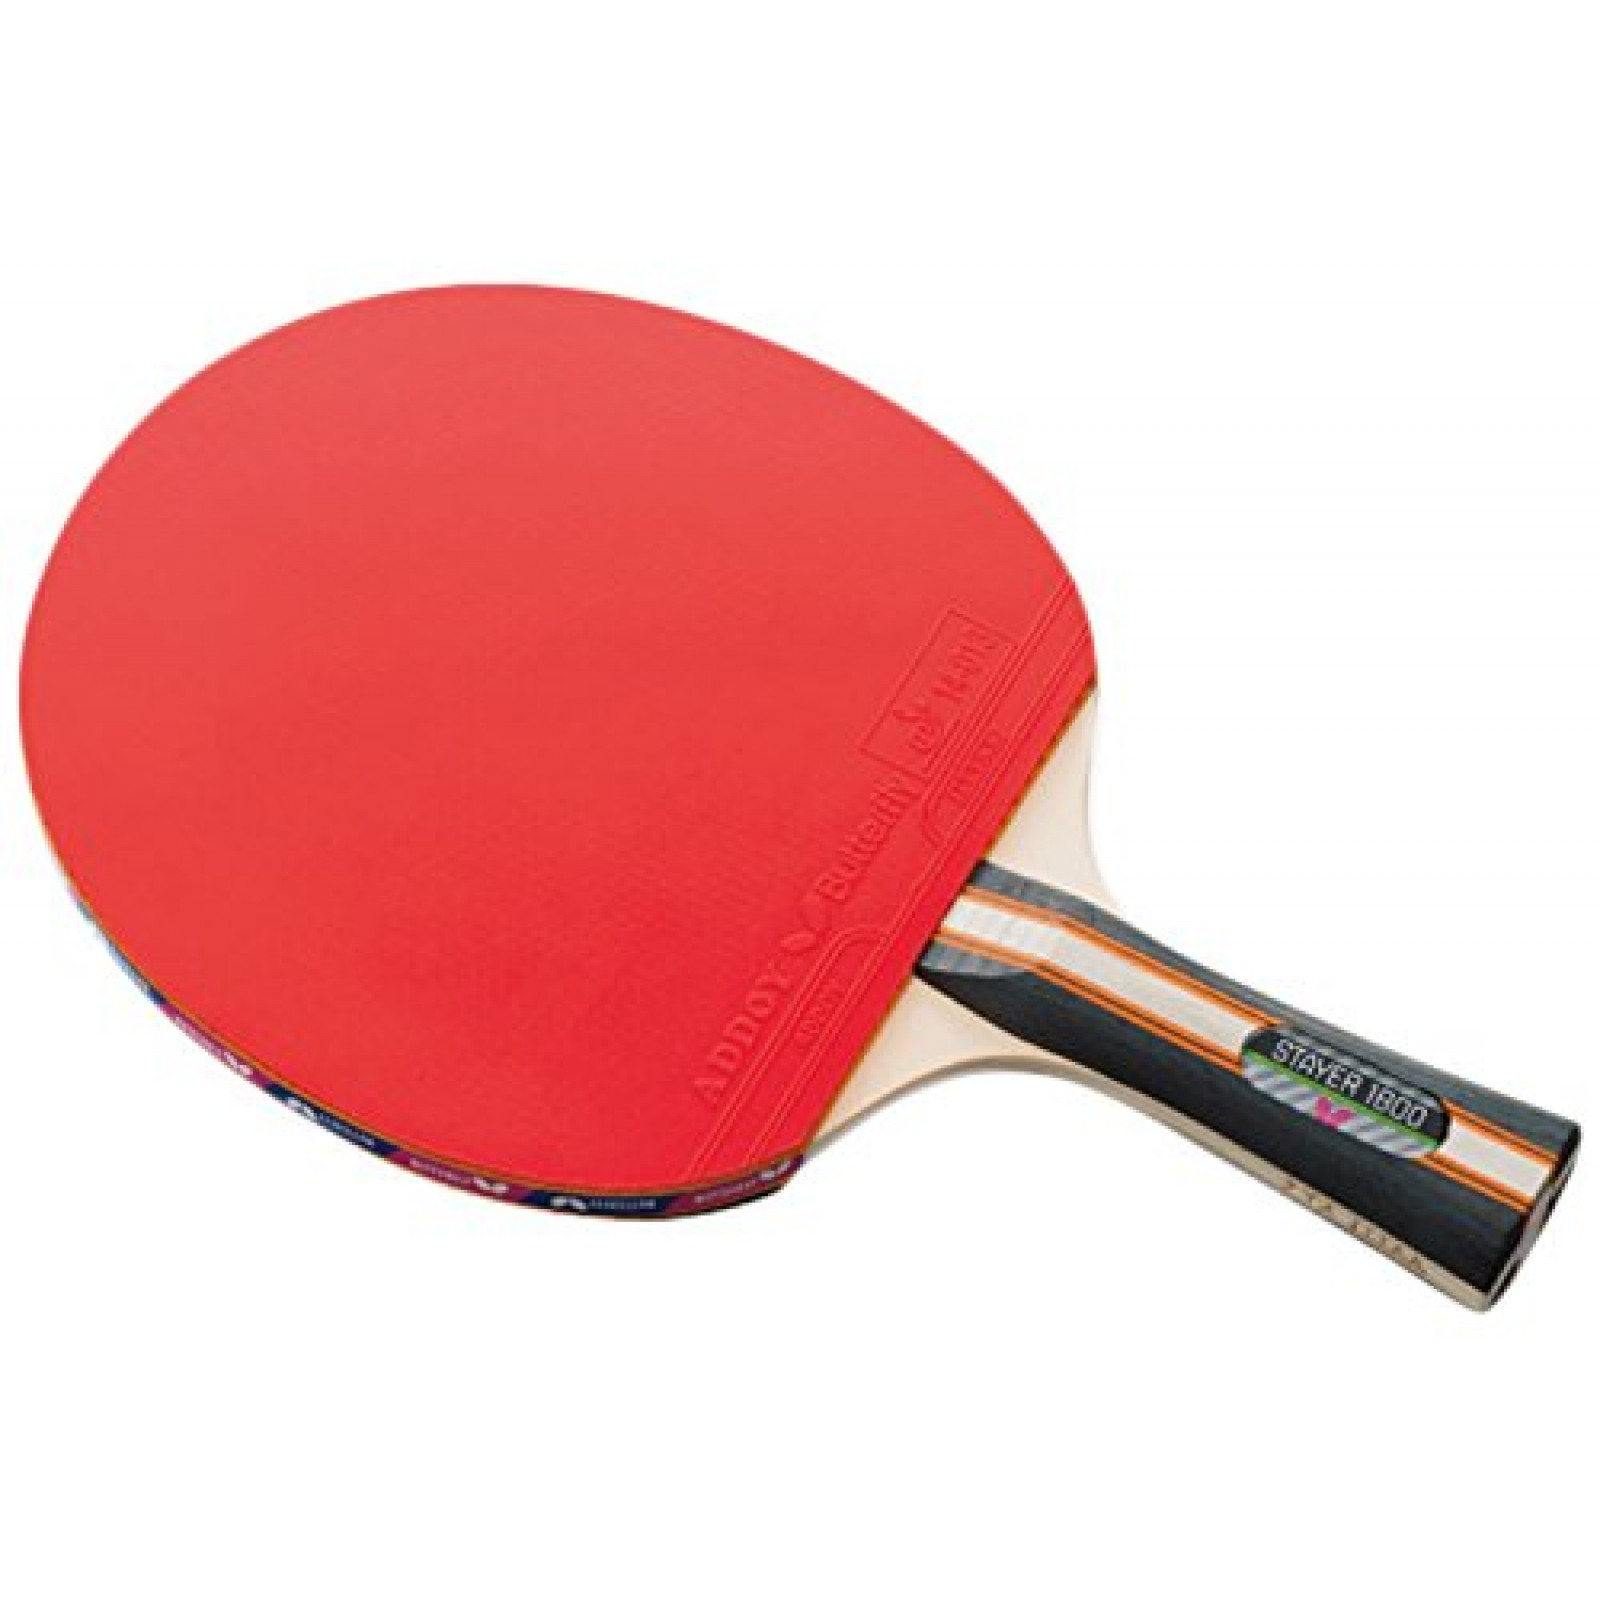 Butterfly Stayer 1800 Shakehand FL Table Tennis Racket with Rubber